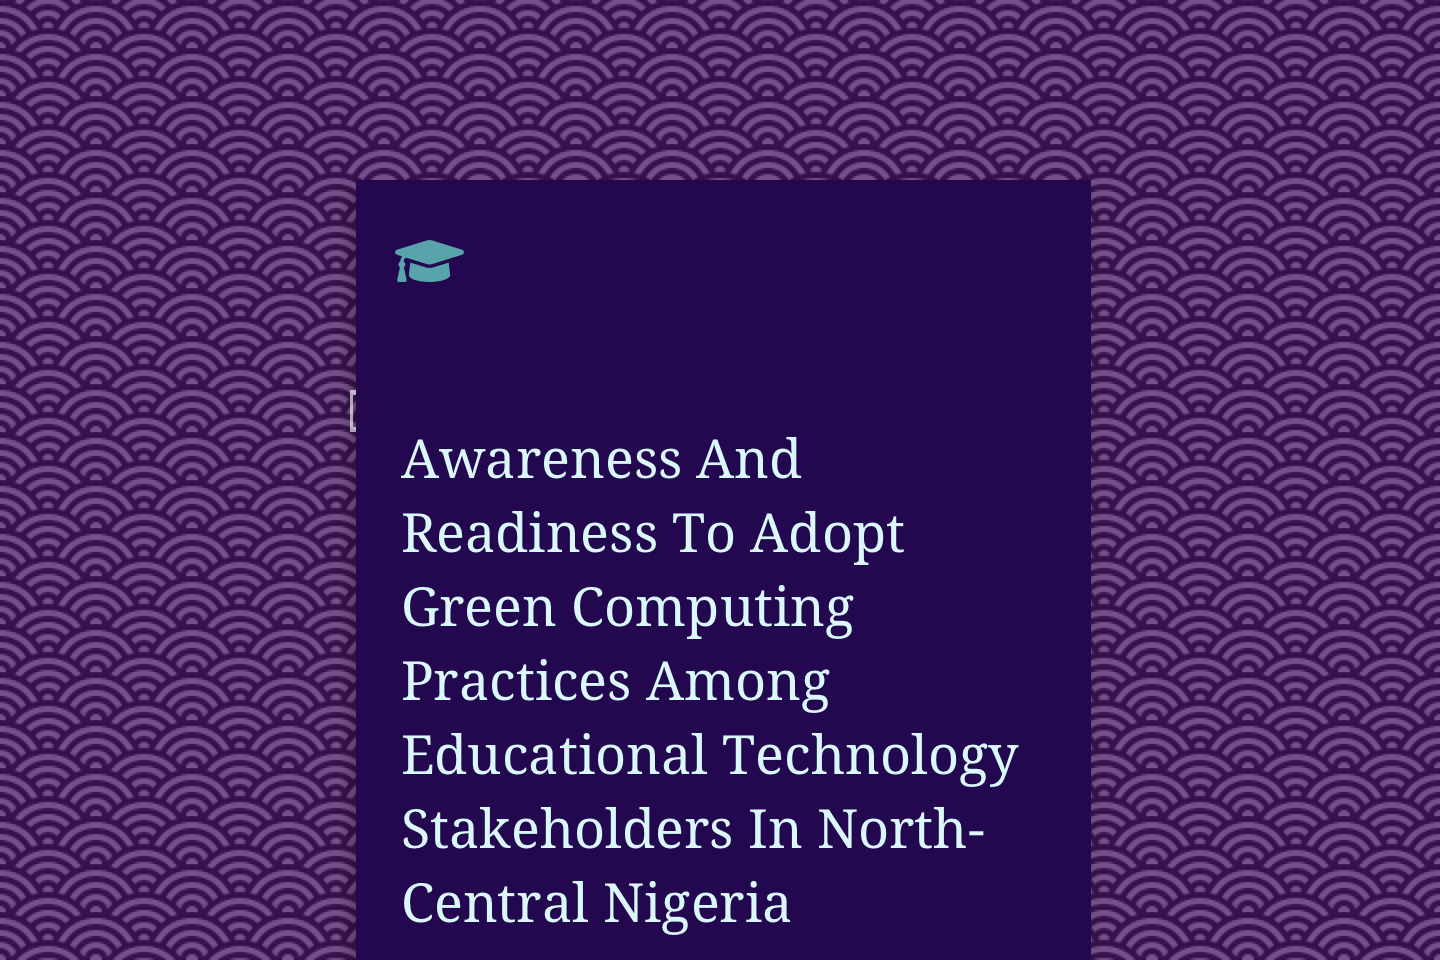 Awareness And Readiness To Adopt Green Computing Practices Among Educational Technology Stakeholders In North-Central Nigeria